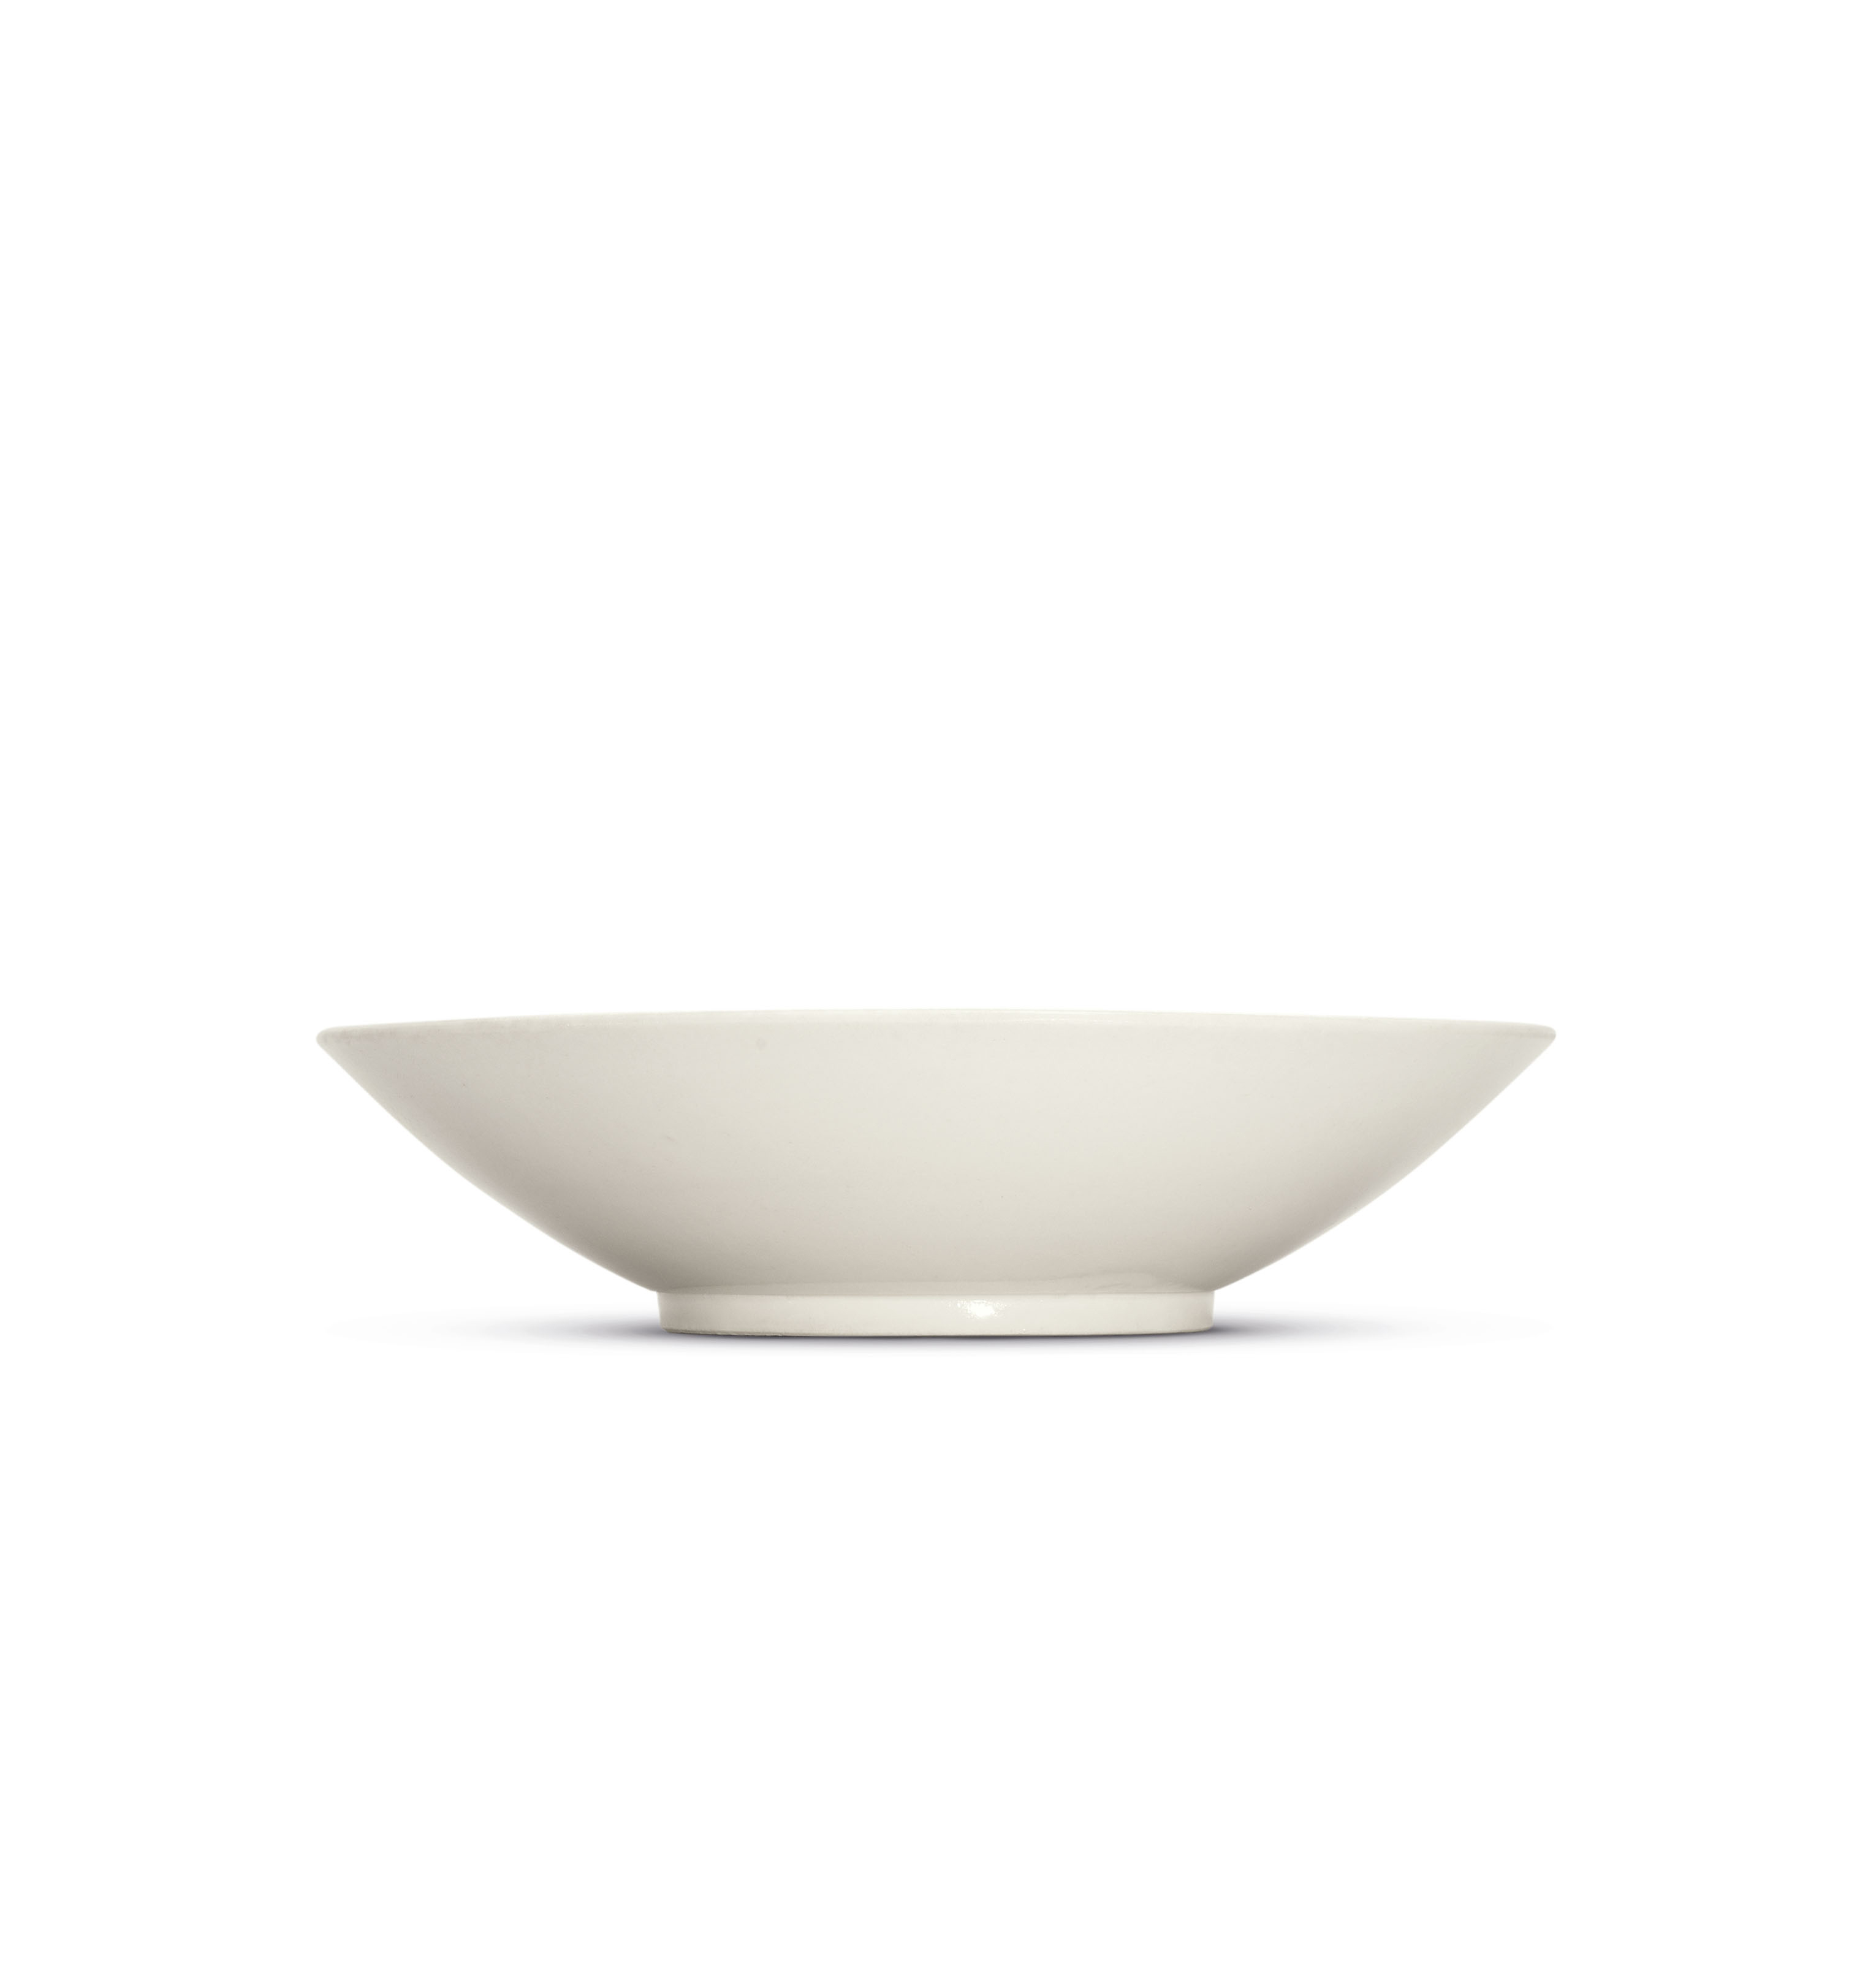 A VERY RARE INSCRIBED XING WHITE-GLAZED 'DAYING' BOWL